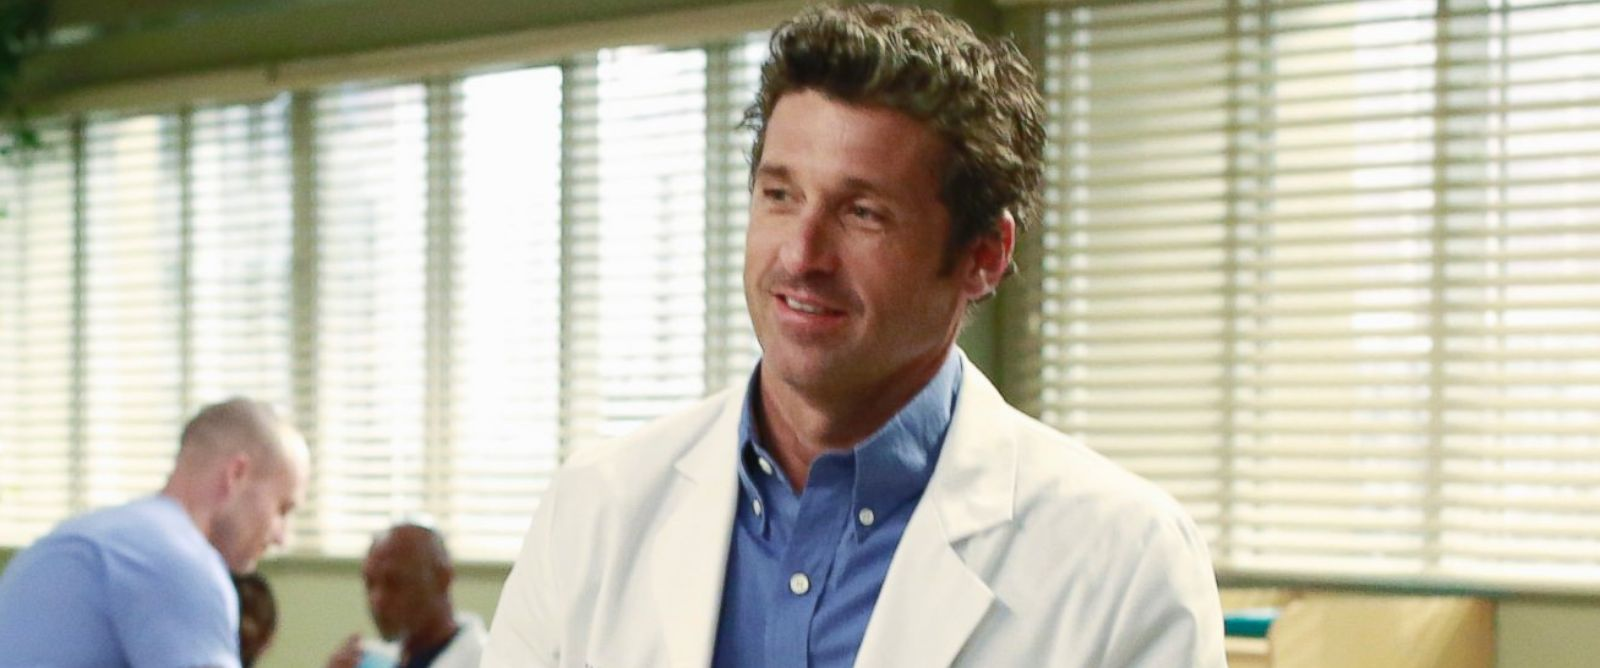 Patrick Dempsey Net Worth Age Height Wife Profile Movies